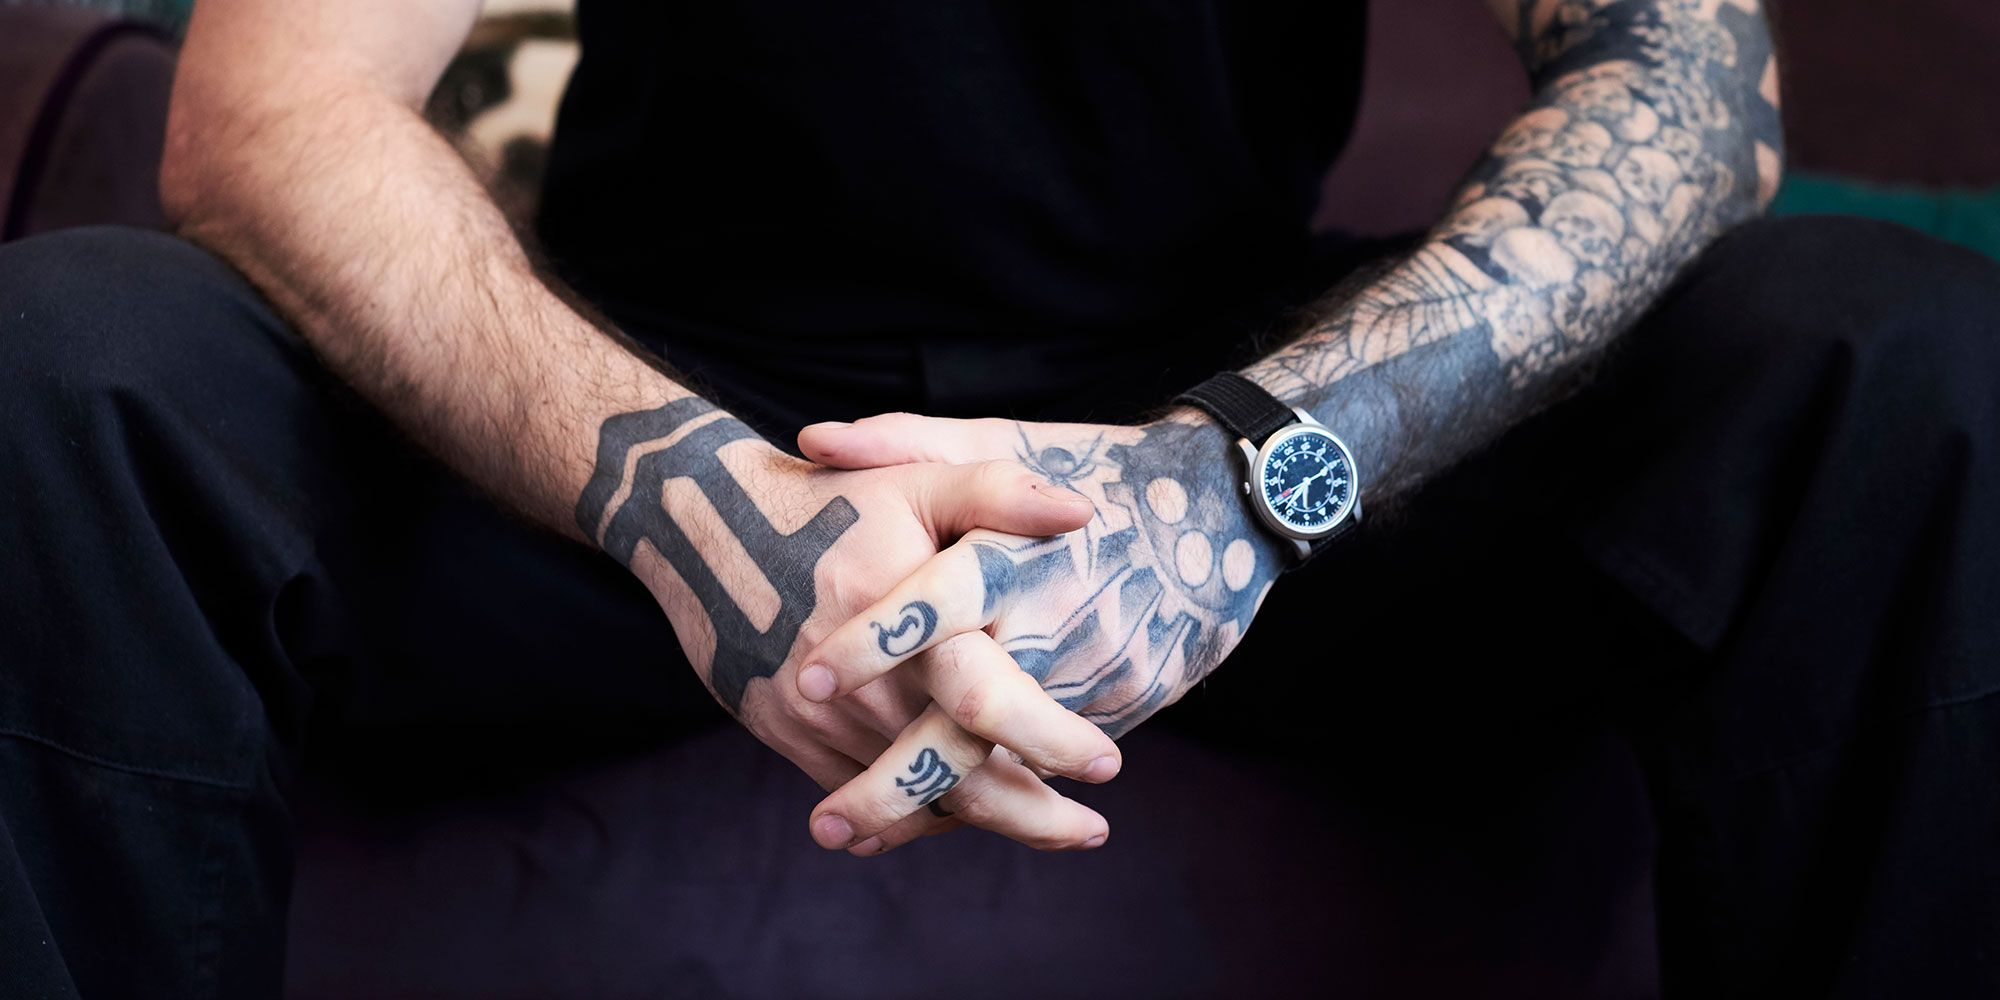 How to Protect Your Tattoos From Aging